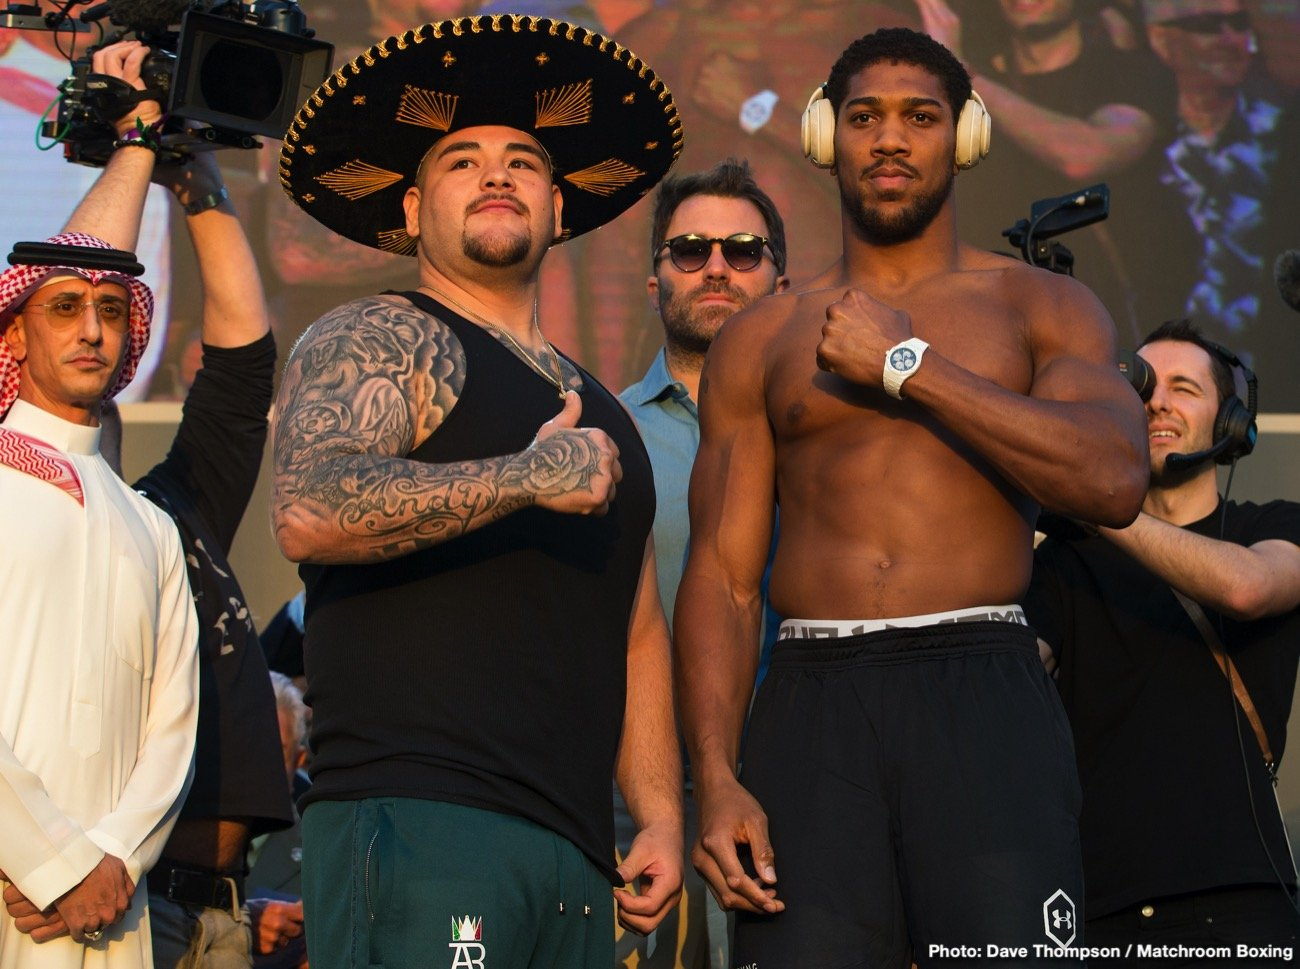 Andy Ruiz, Anthony Joshua - The biggest fight of the year is now just over 24 hours away. Ahead of tomorrow's much-anticipated rematch between Andy Ruiz, Jr. and Anthony Joshua OBE, both fighters tipped the scales in front of a raucous crowd in Saudi Arabia. At 283.7 pounds, Ruiz came in at his heaviest weight in many years and 15 pounds heavier than he was for the first fight in June. Meanwhile, Joshua came in at 237.8 pounds, which is 10 pounds lighter than he was in June and the lightest he has been for any fight since 2014.